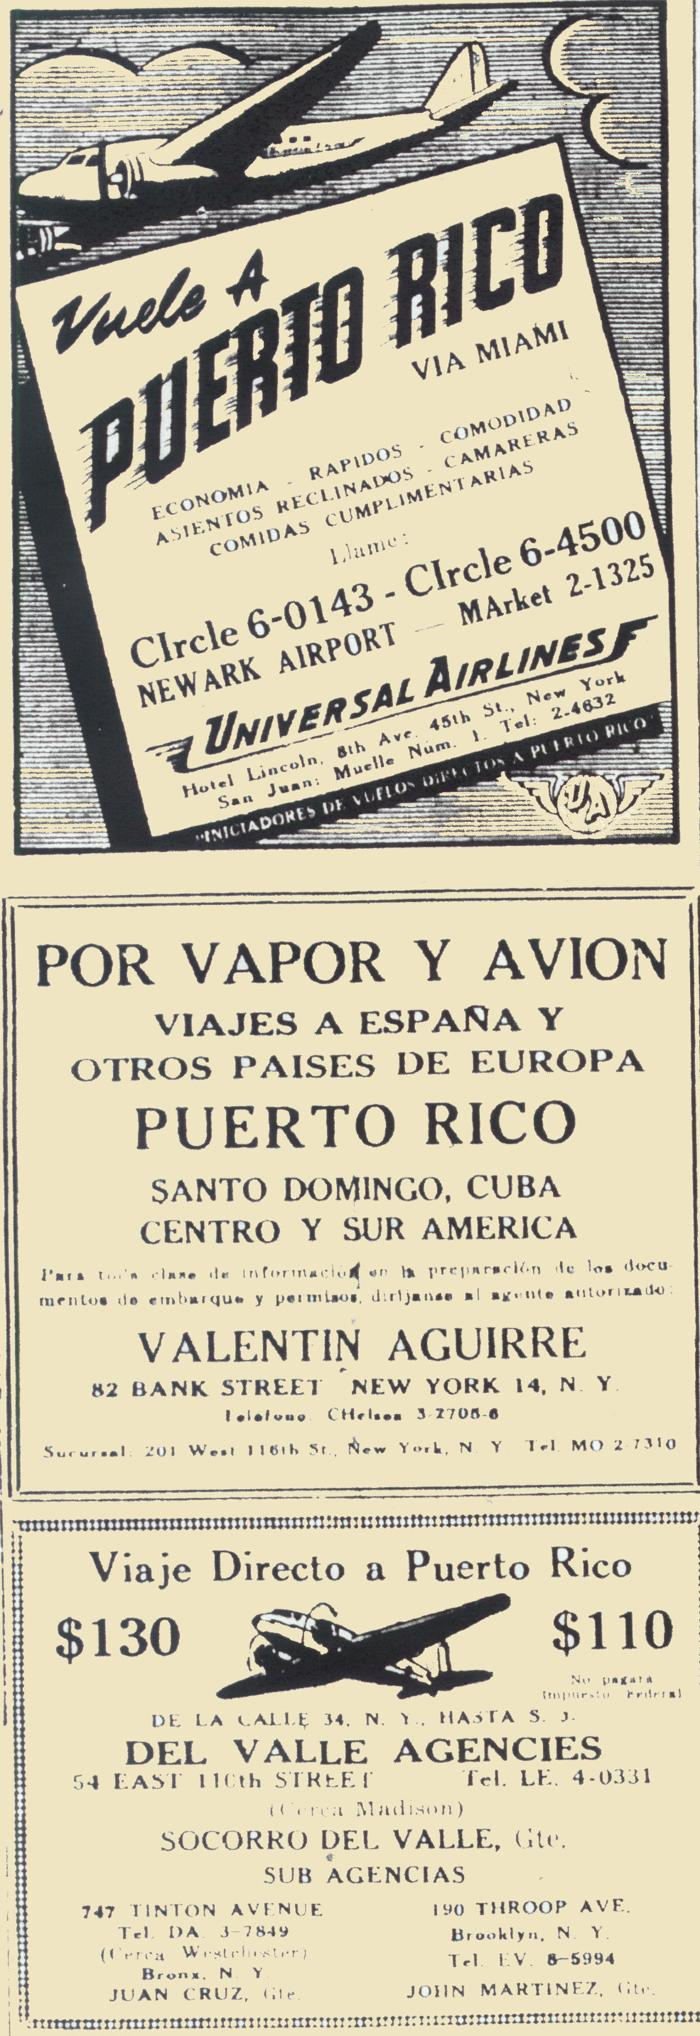 Spanish and English advertisements published in local newspapers in New York and Puerto Rico